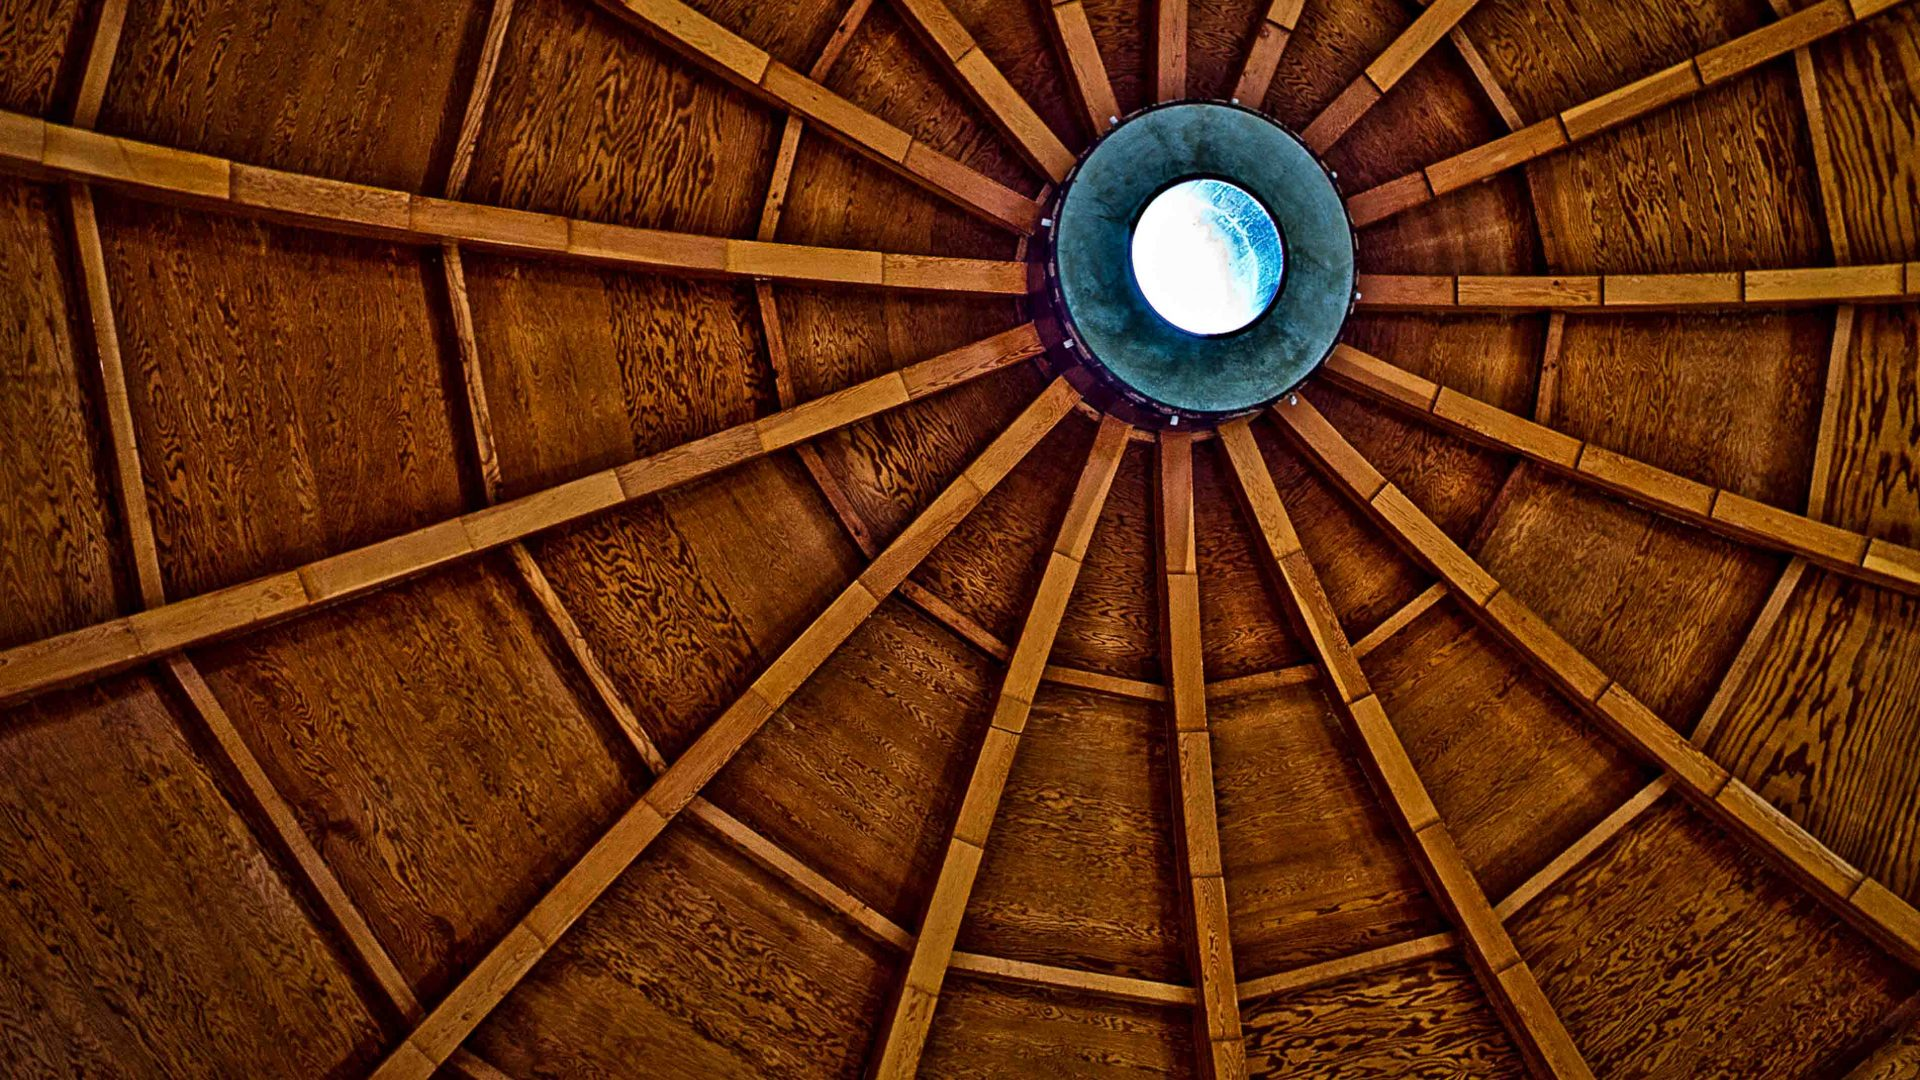 The intricate wooden ceiling of the Integratron.